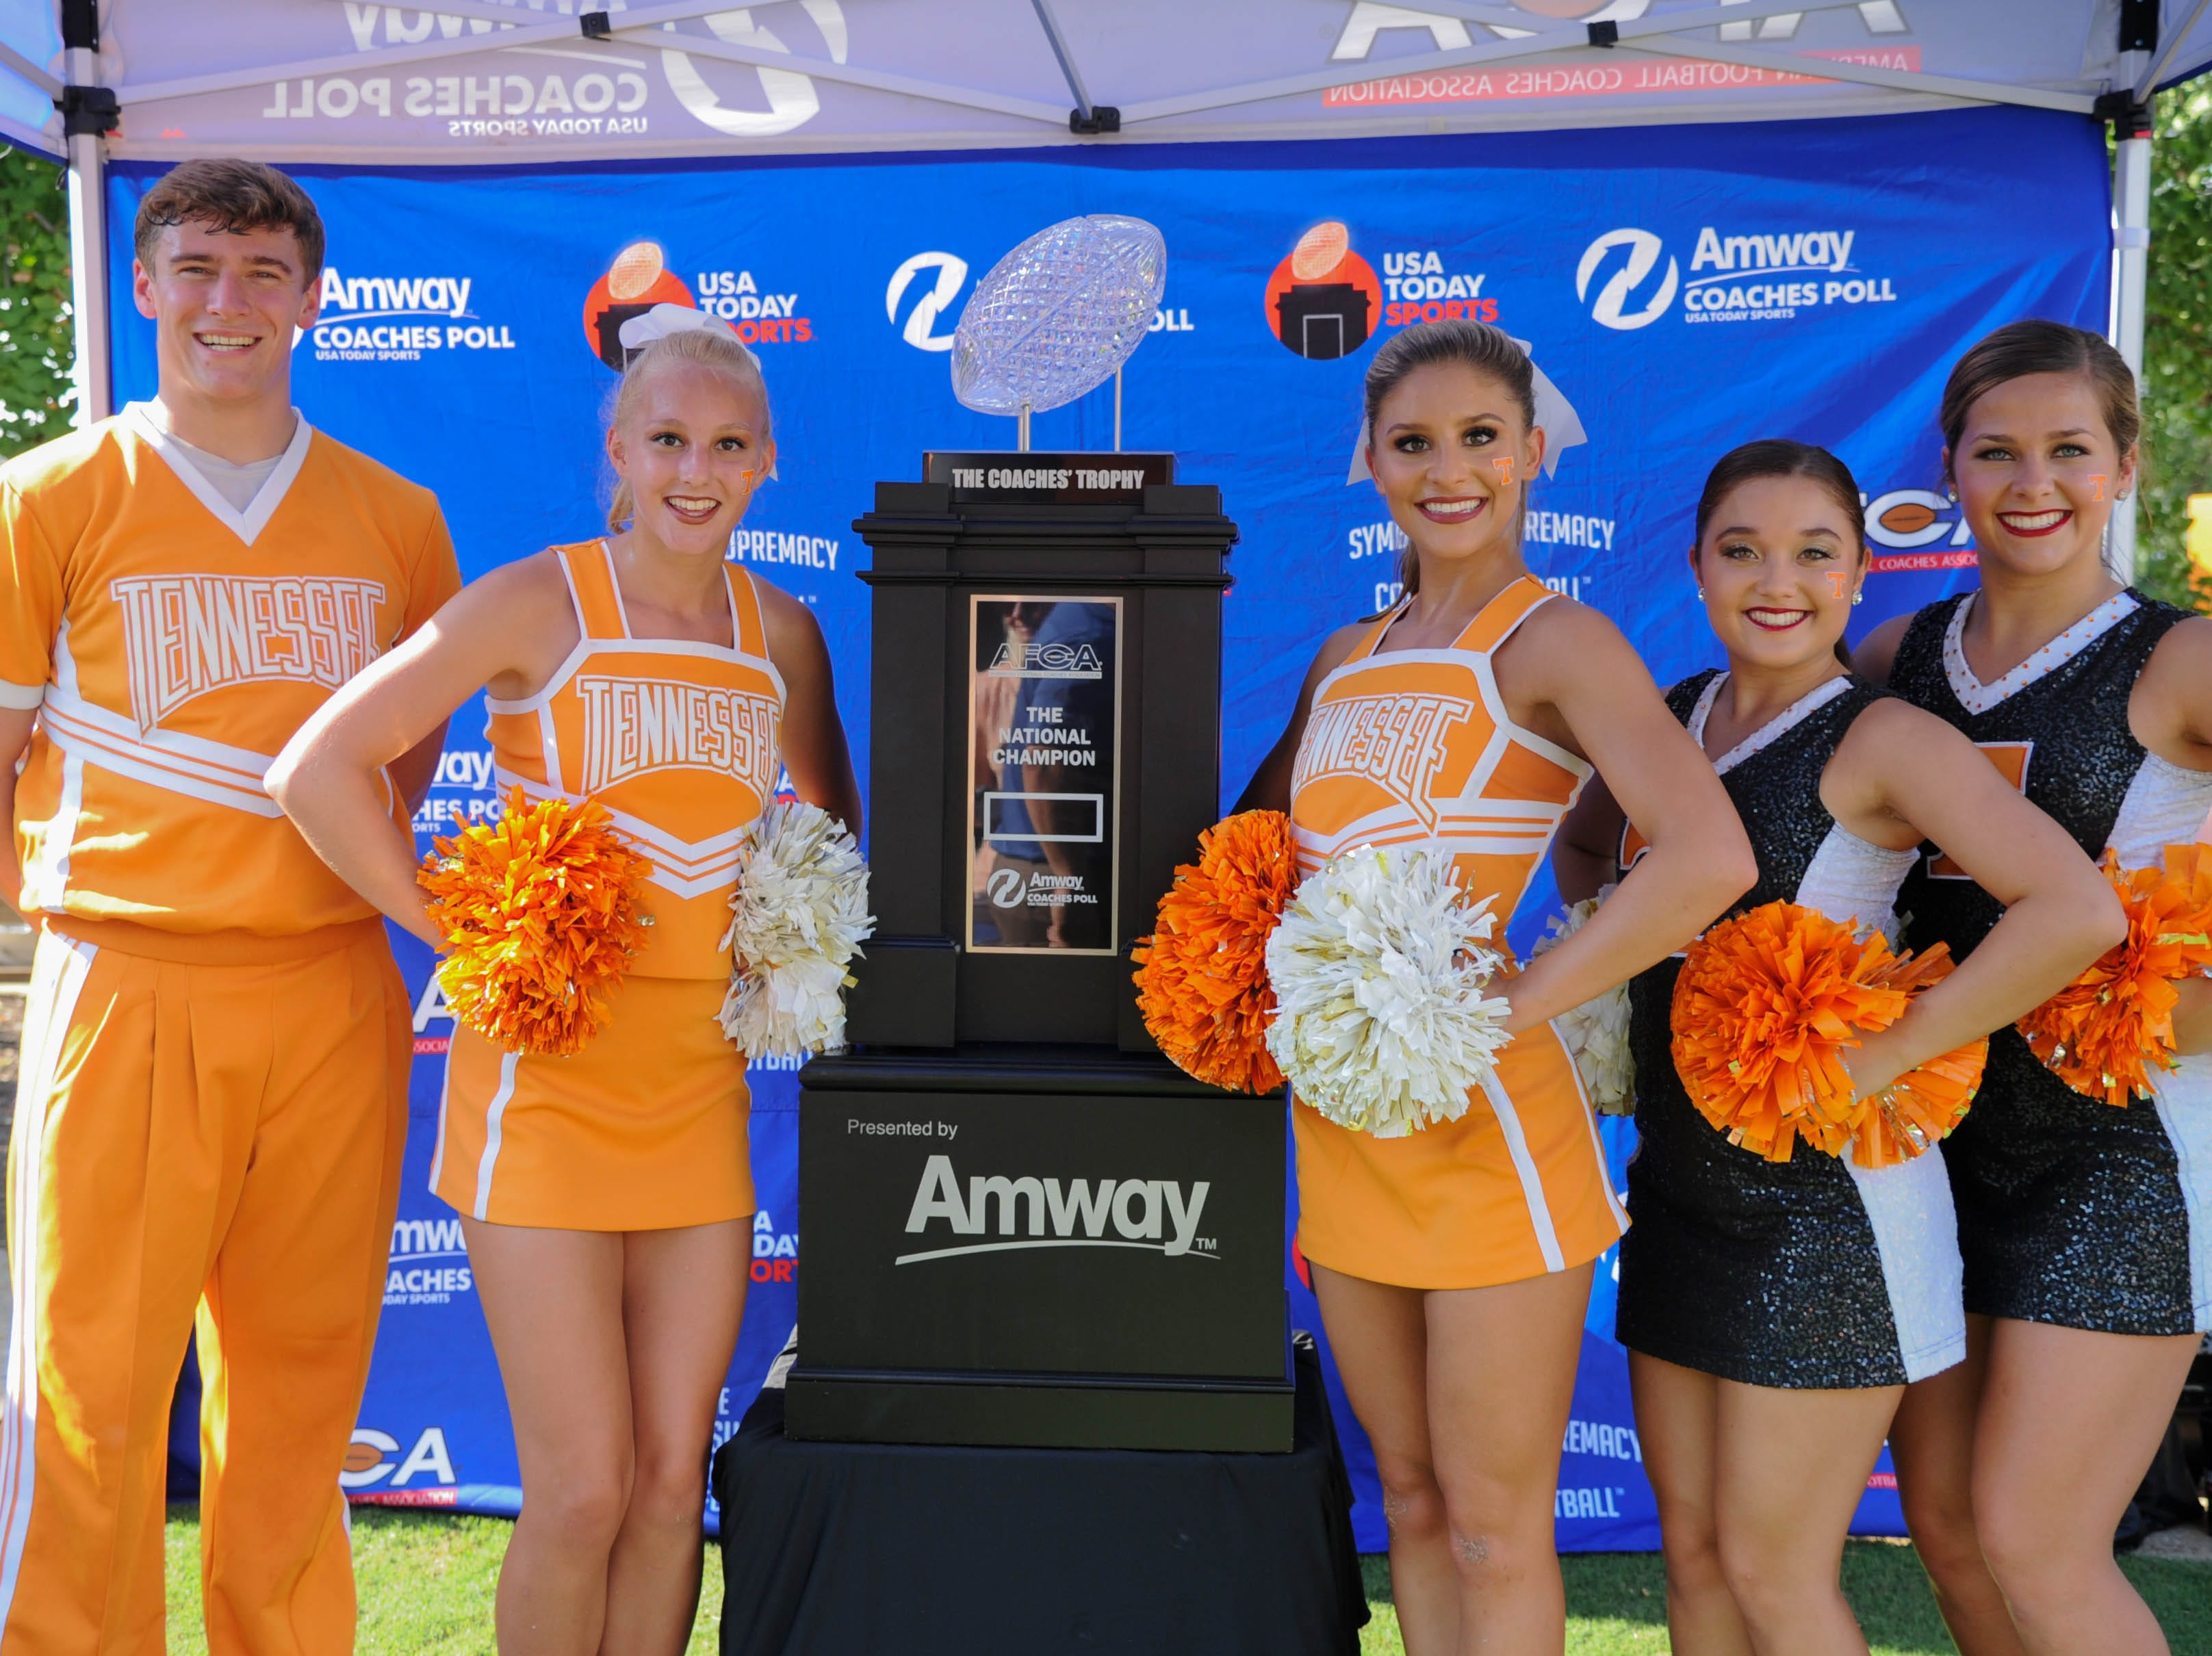 Sep 22, 2018; Knoxville, TN, USA; Tennessee Volunteers cheerleaders pose with the Amway Coaches Trophy before the game against the Florida Gators in Knoxville, TN.